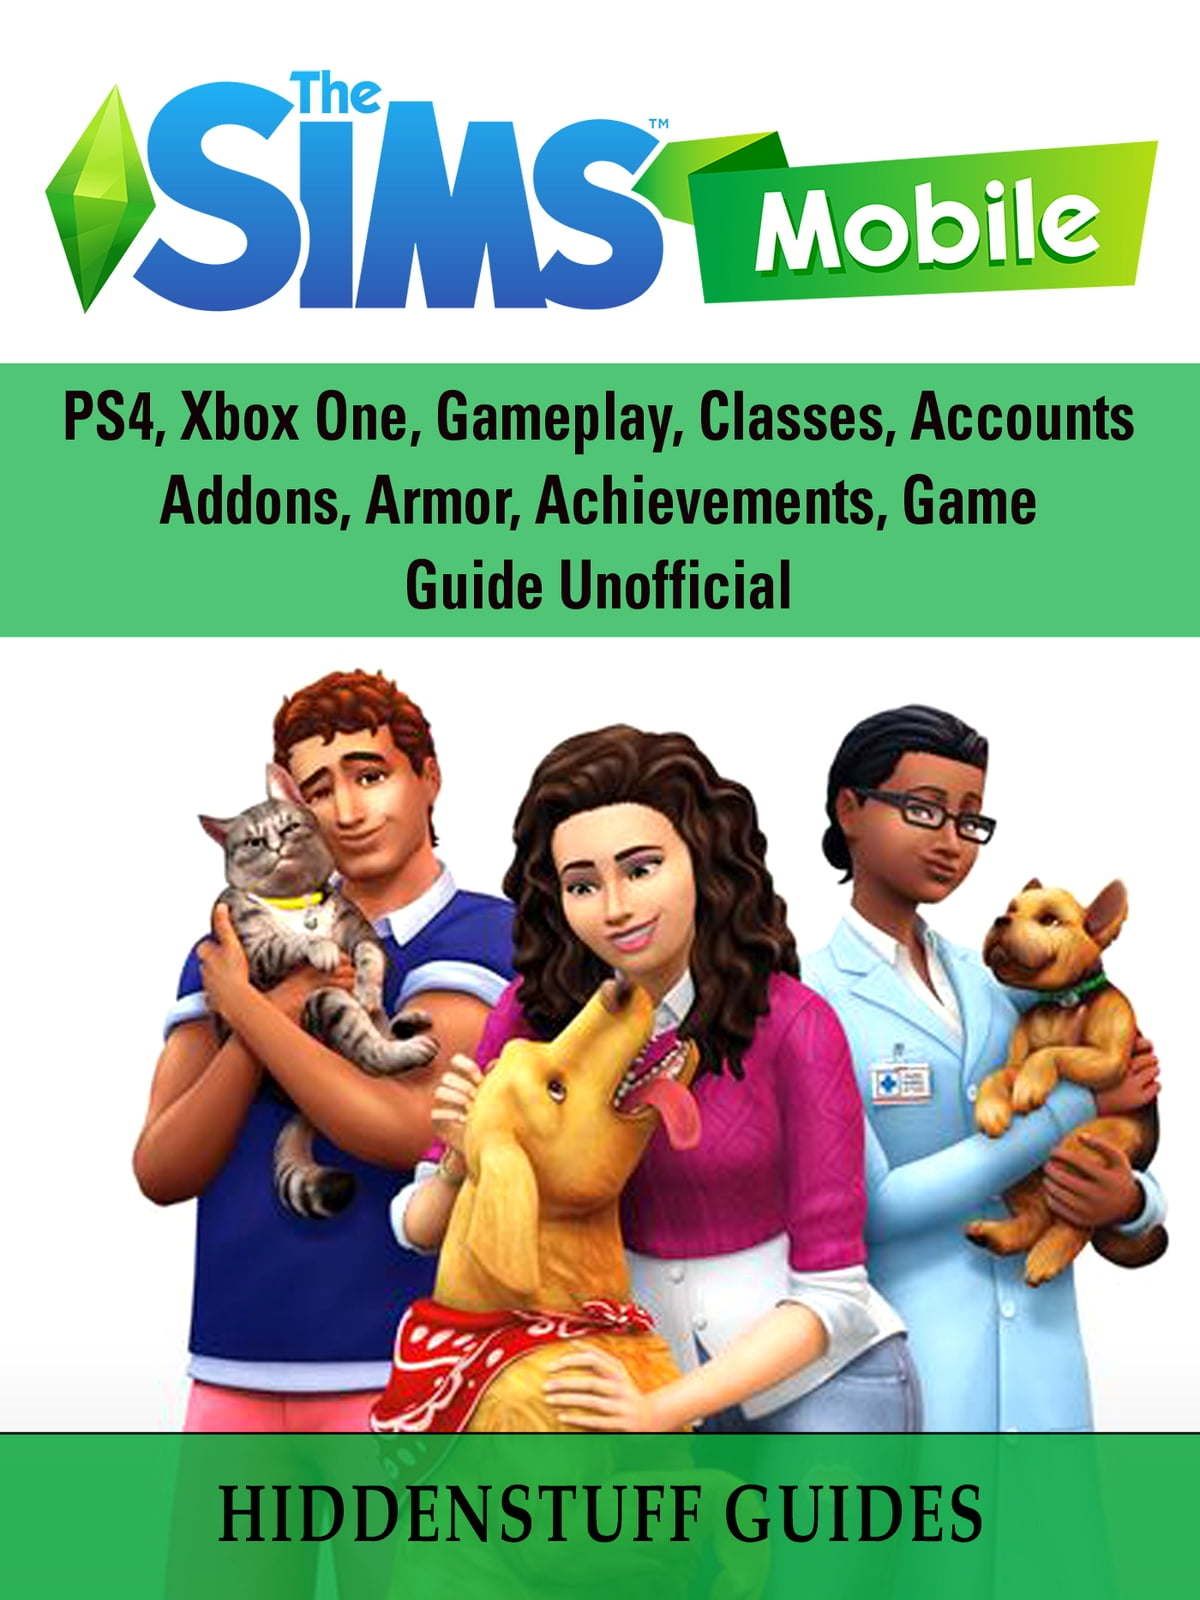 Download The Sims Mobile Mod Apk : download, mobile, Mobile,, Cheats,, Hacks,, Strategy,, Tips,, Download,, Guide, Unofficial, EBook, Hiddenstuff, Guides, 9781387962938, Rakuten, United, States